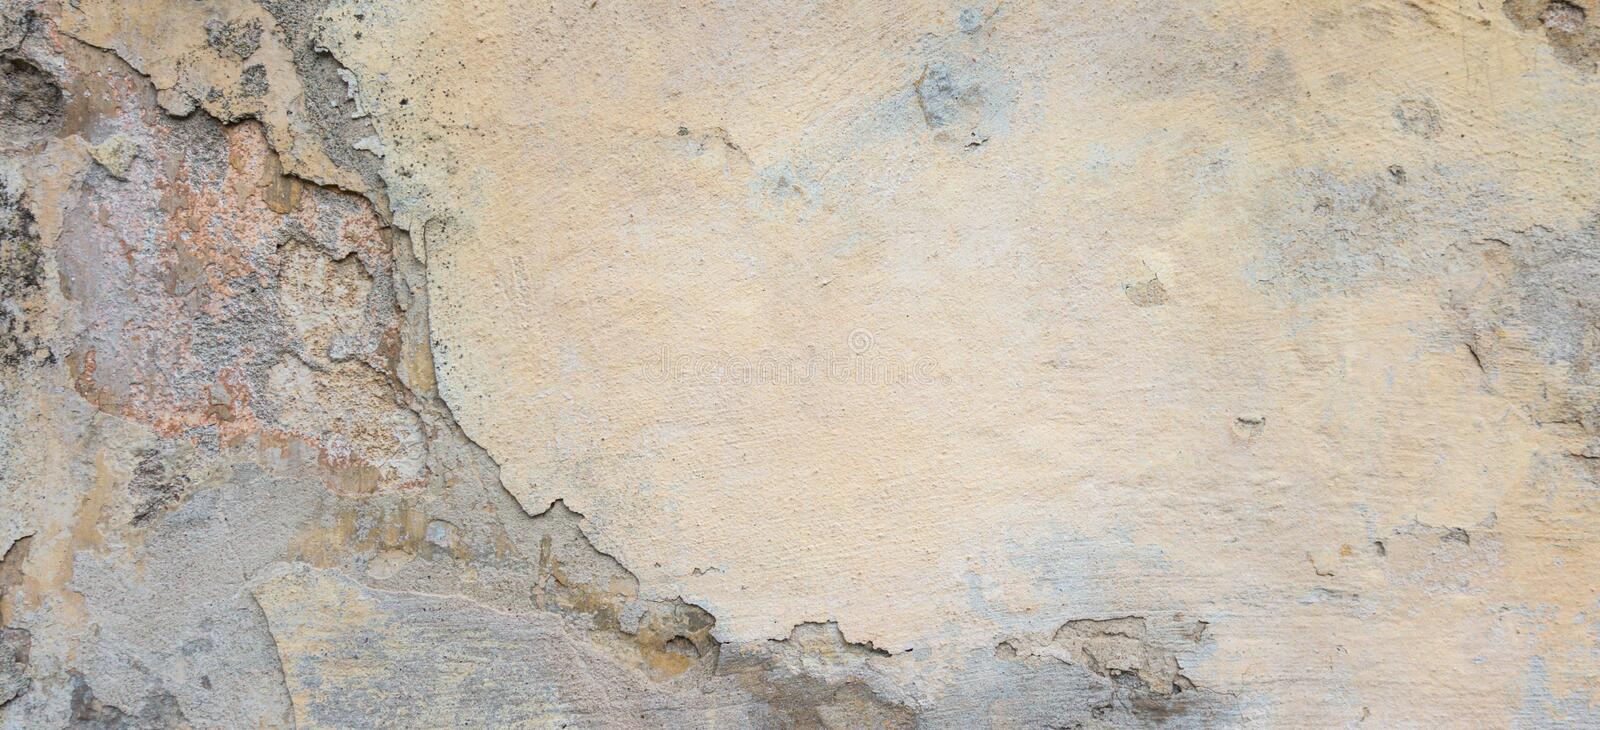 Old Plaster Wall With Peel Grey Stucco Texture Background. Decayed Cracked Rough Abstract Banner Surface. Old Plaster Wall With Peel Grey Stucco Texture royalty free stock photos